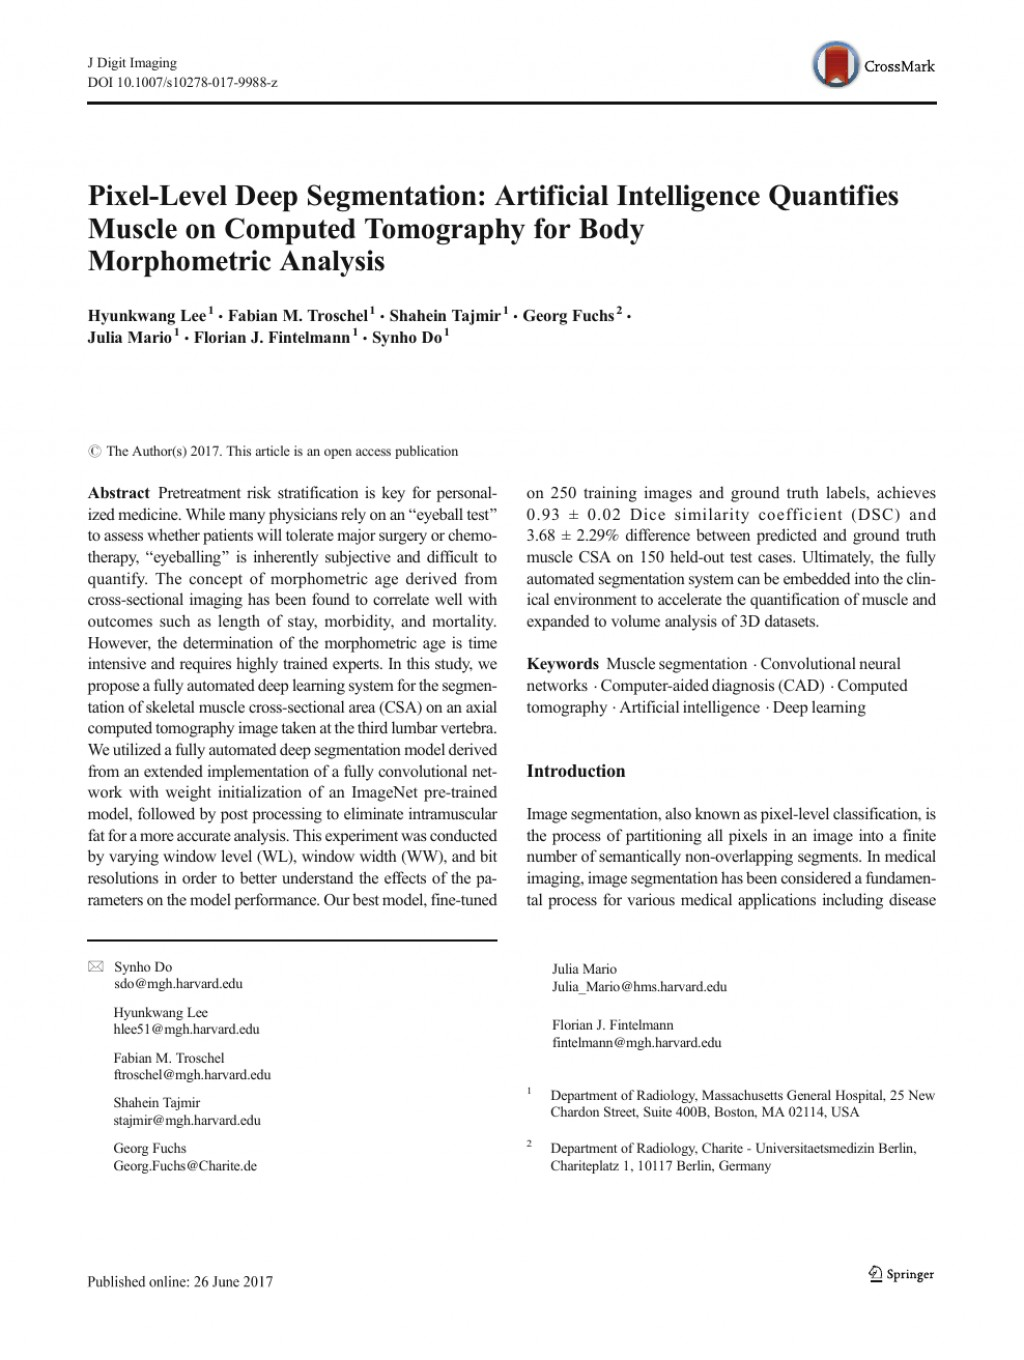 003 Researchs Artificial Intelligence Imposing Research Papers On In Marketing Ieee Pdf Large